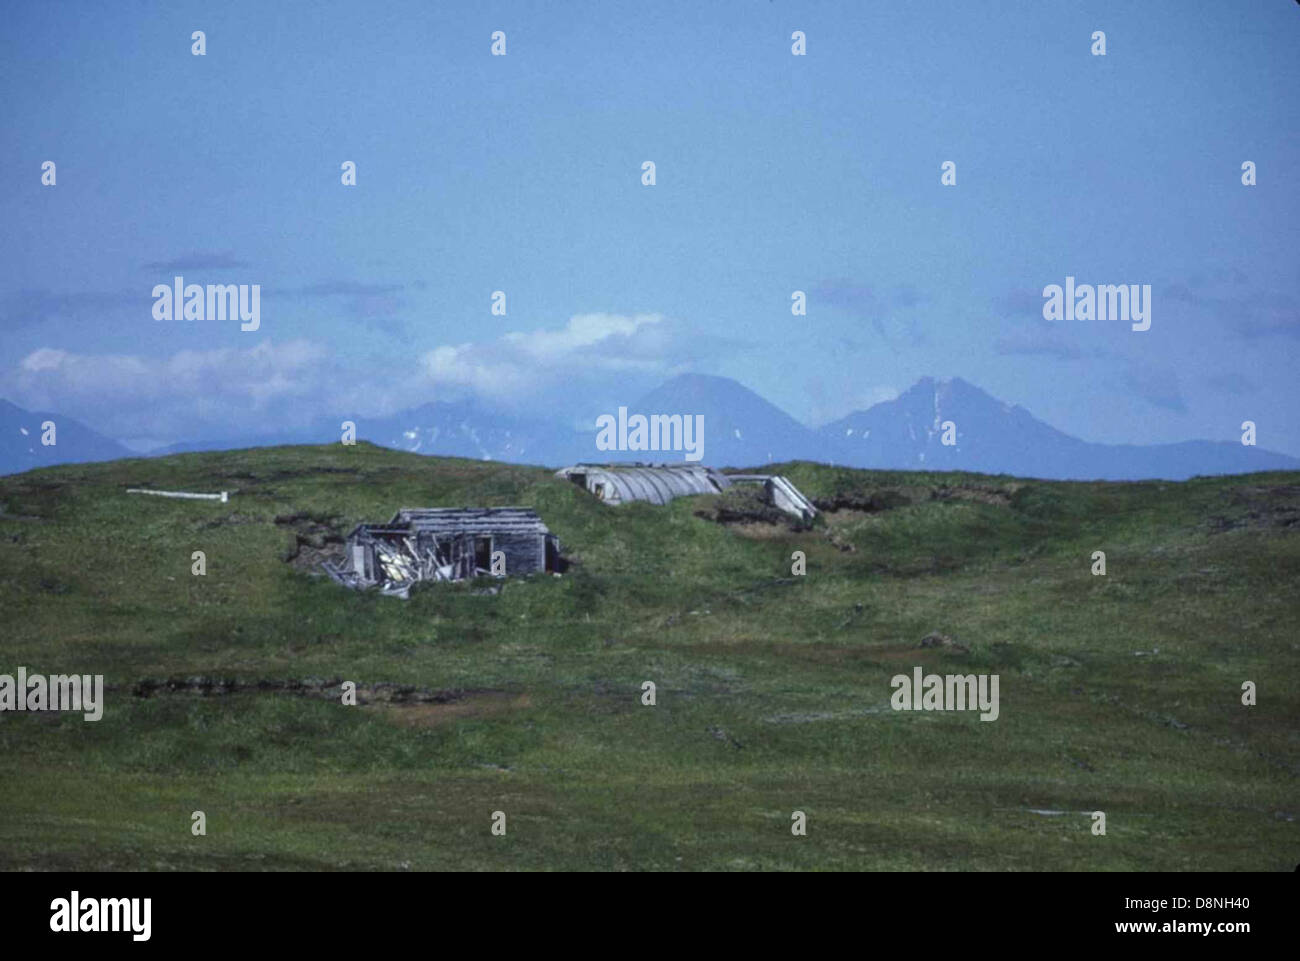 World war two quonset hut. - Stock Image